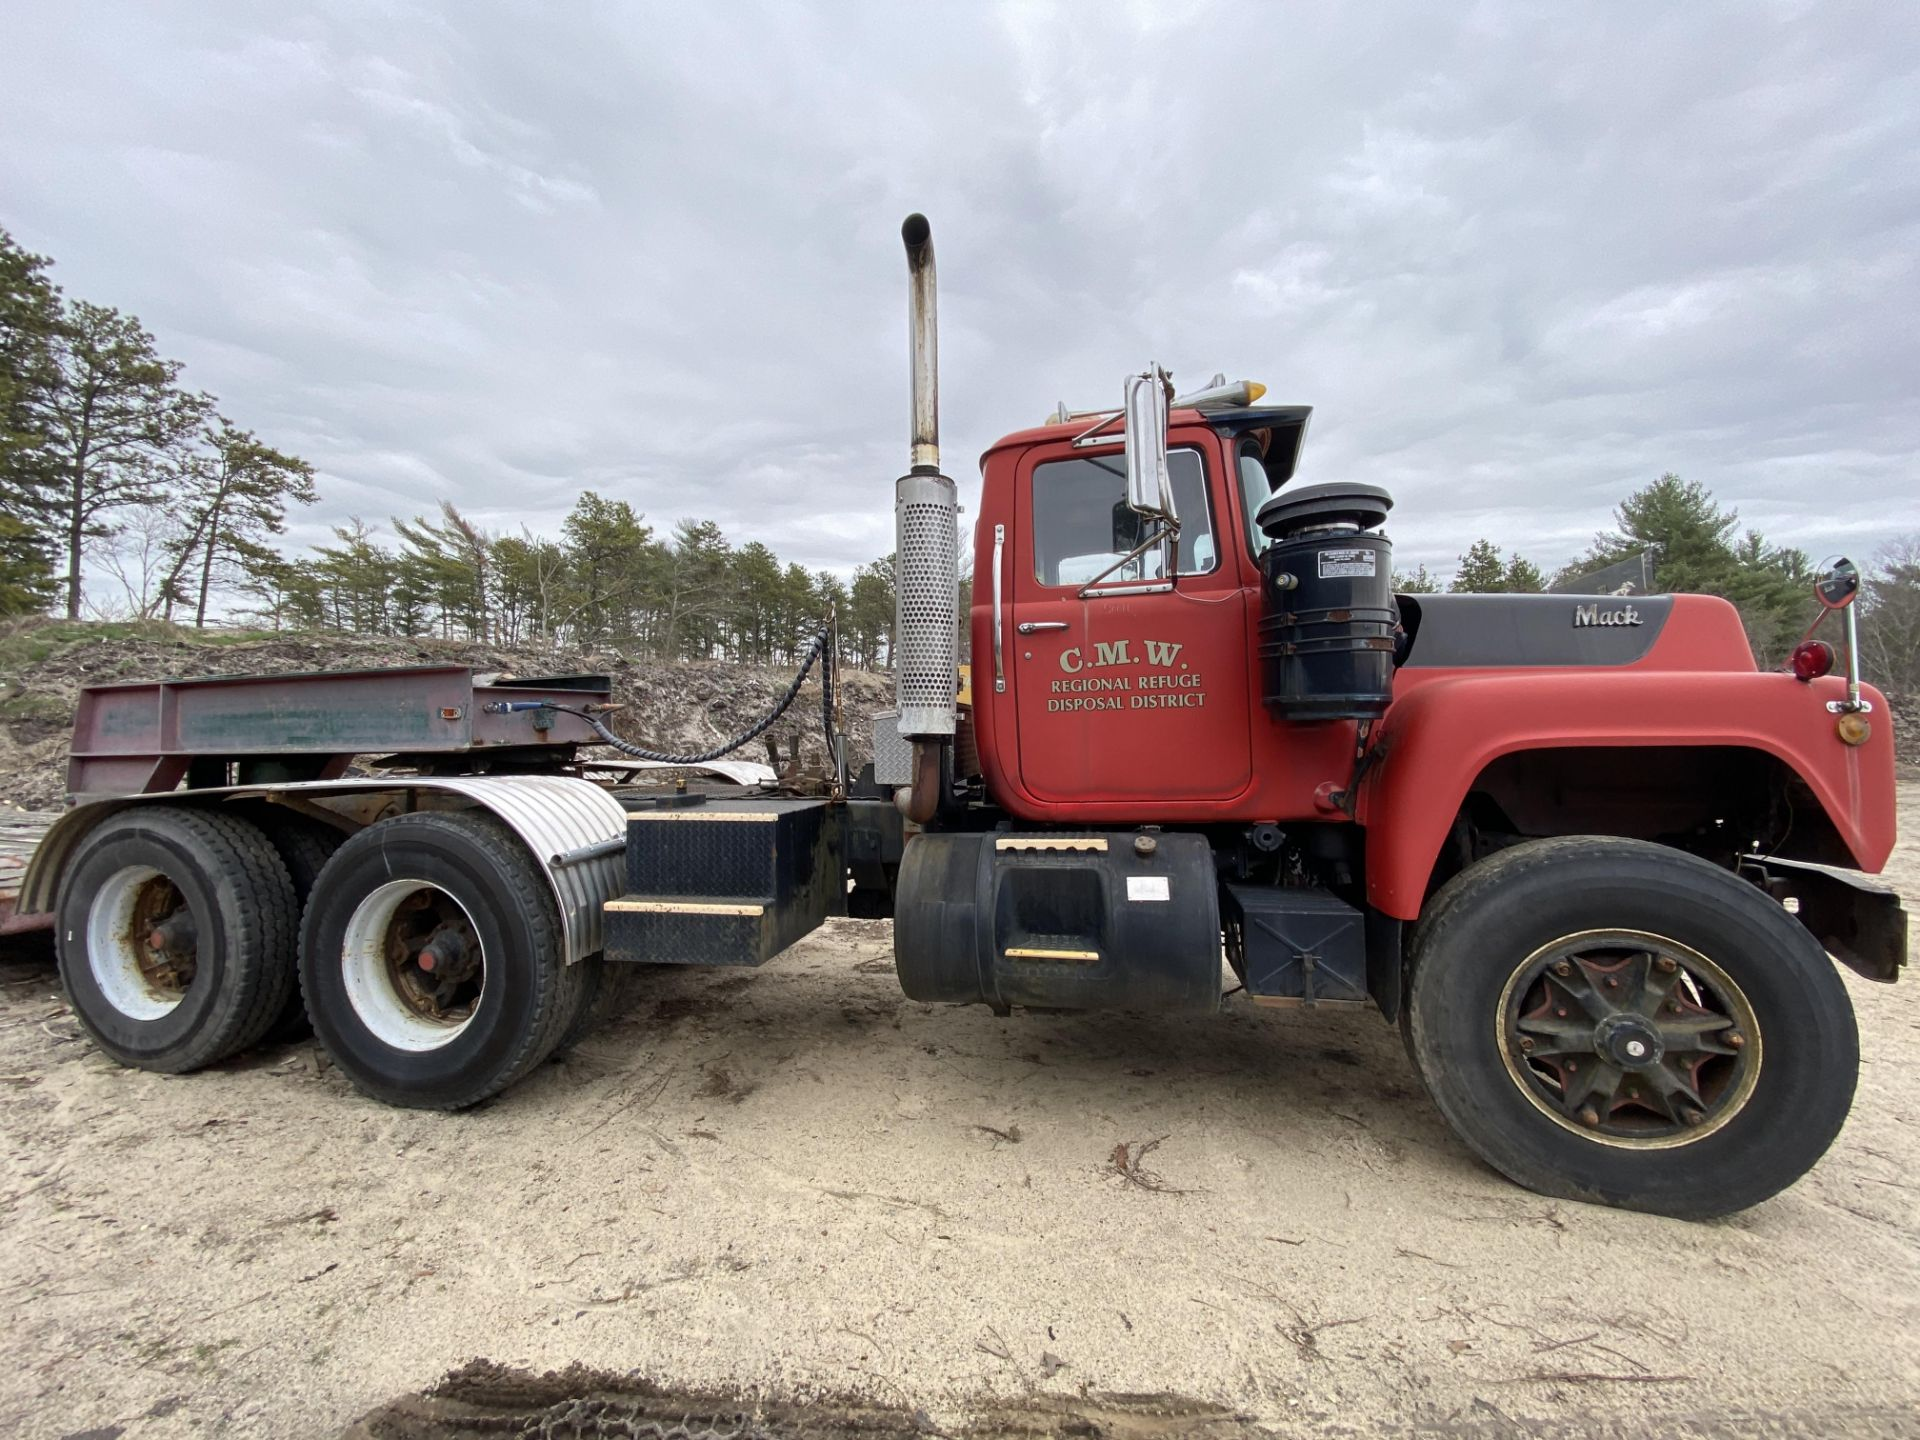 1986 Mack RD688SX Tandem Axle Tractor VIN 1M2P143Y8GA004351, Meter Reads 301,625 Miles, Day Cab, - Image 13 of 22